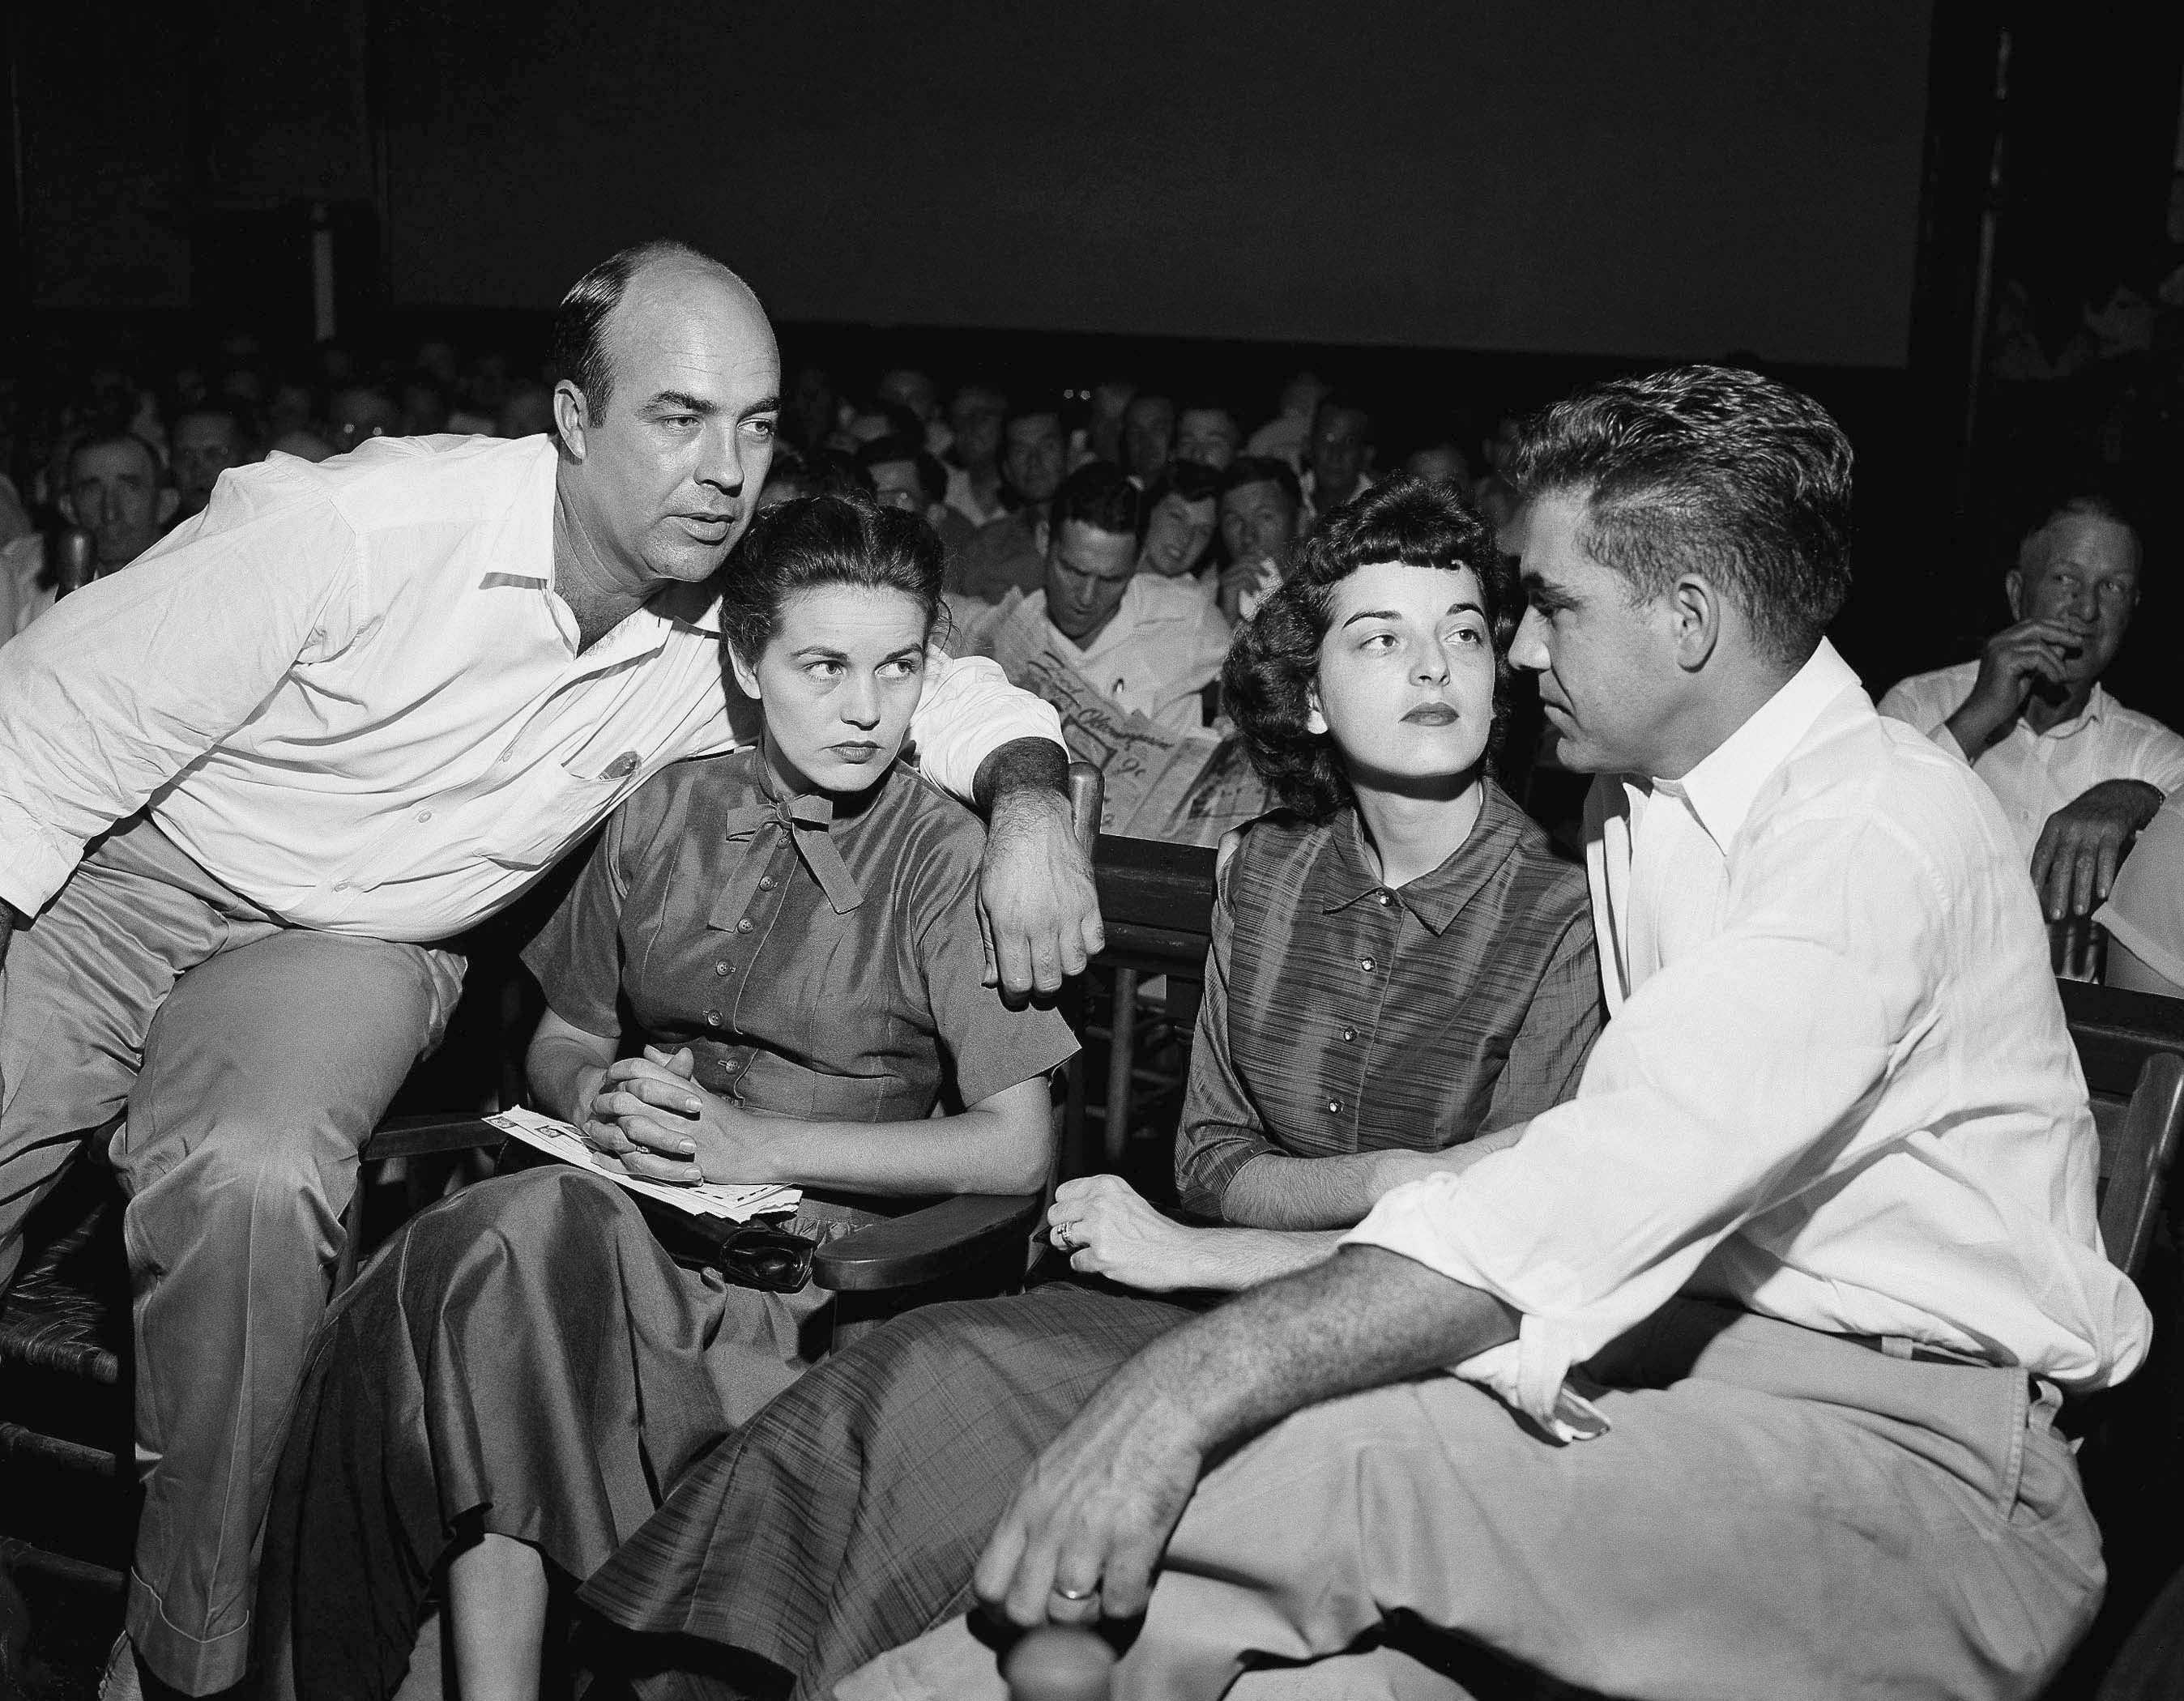 Emmett Till cousin on inquiry: What is the holdup?